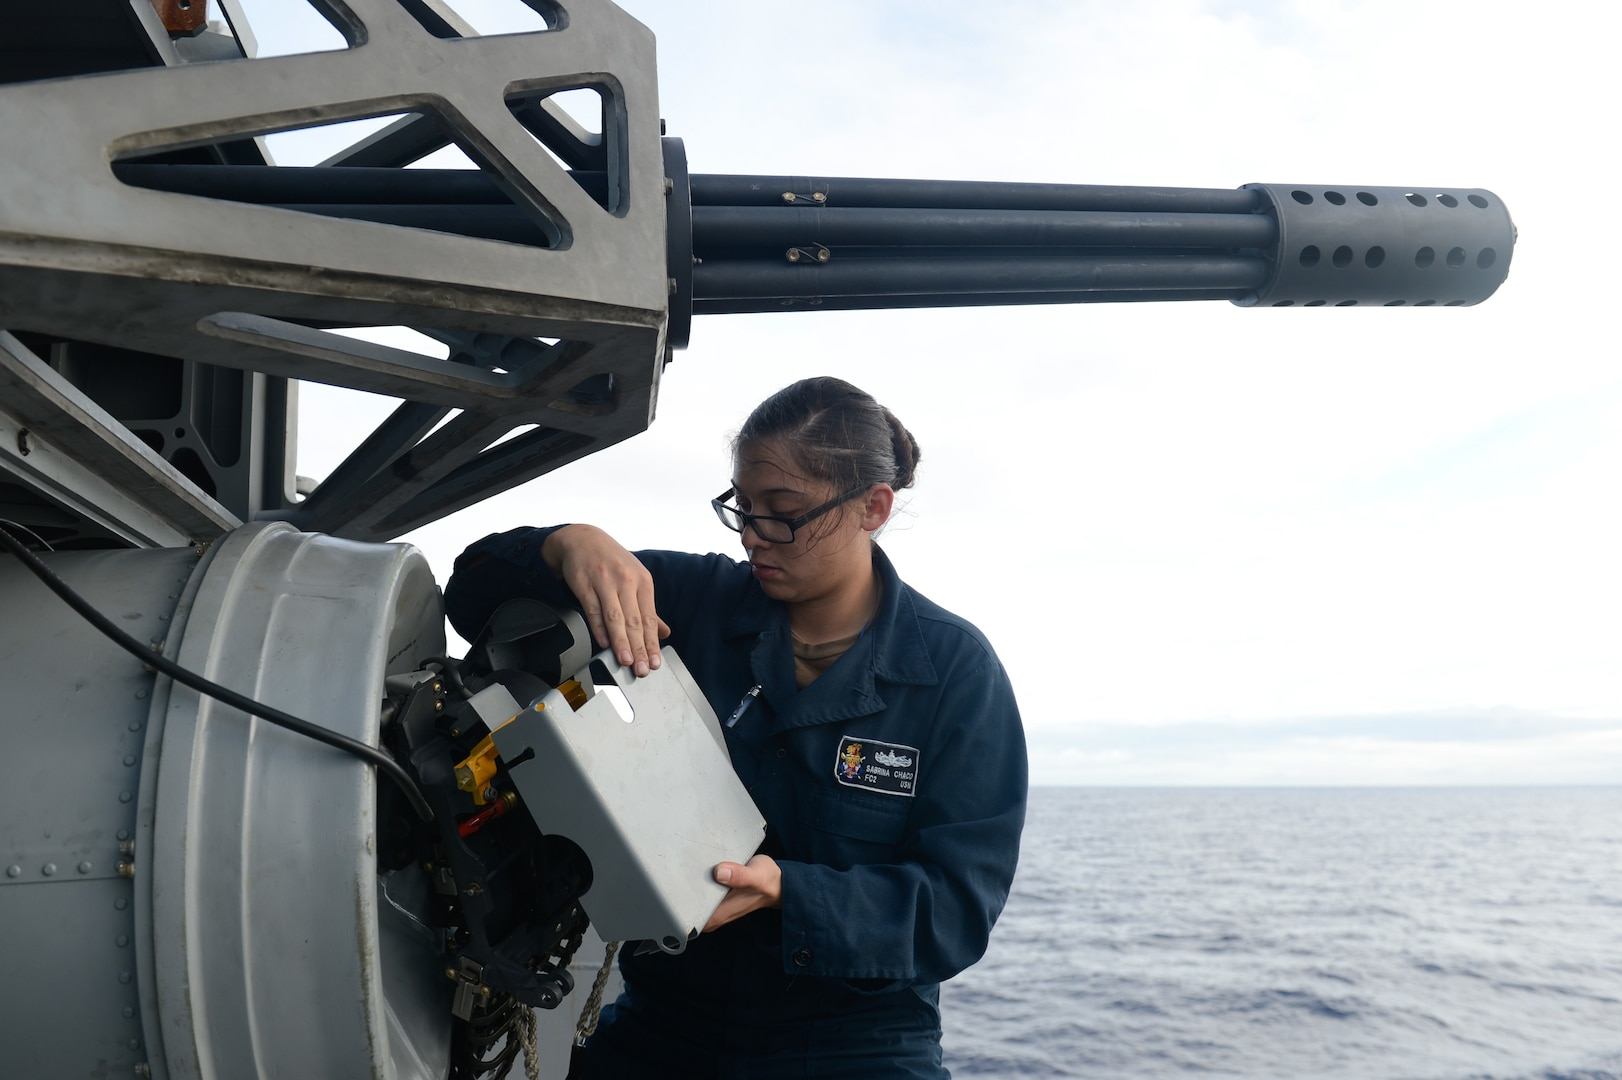 Fire controlman installs radiation cover onto Phalanx close-in weapon system